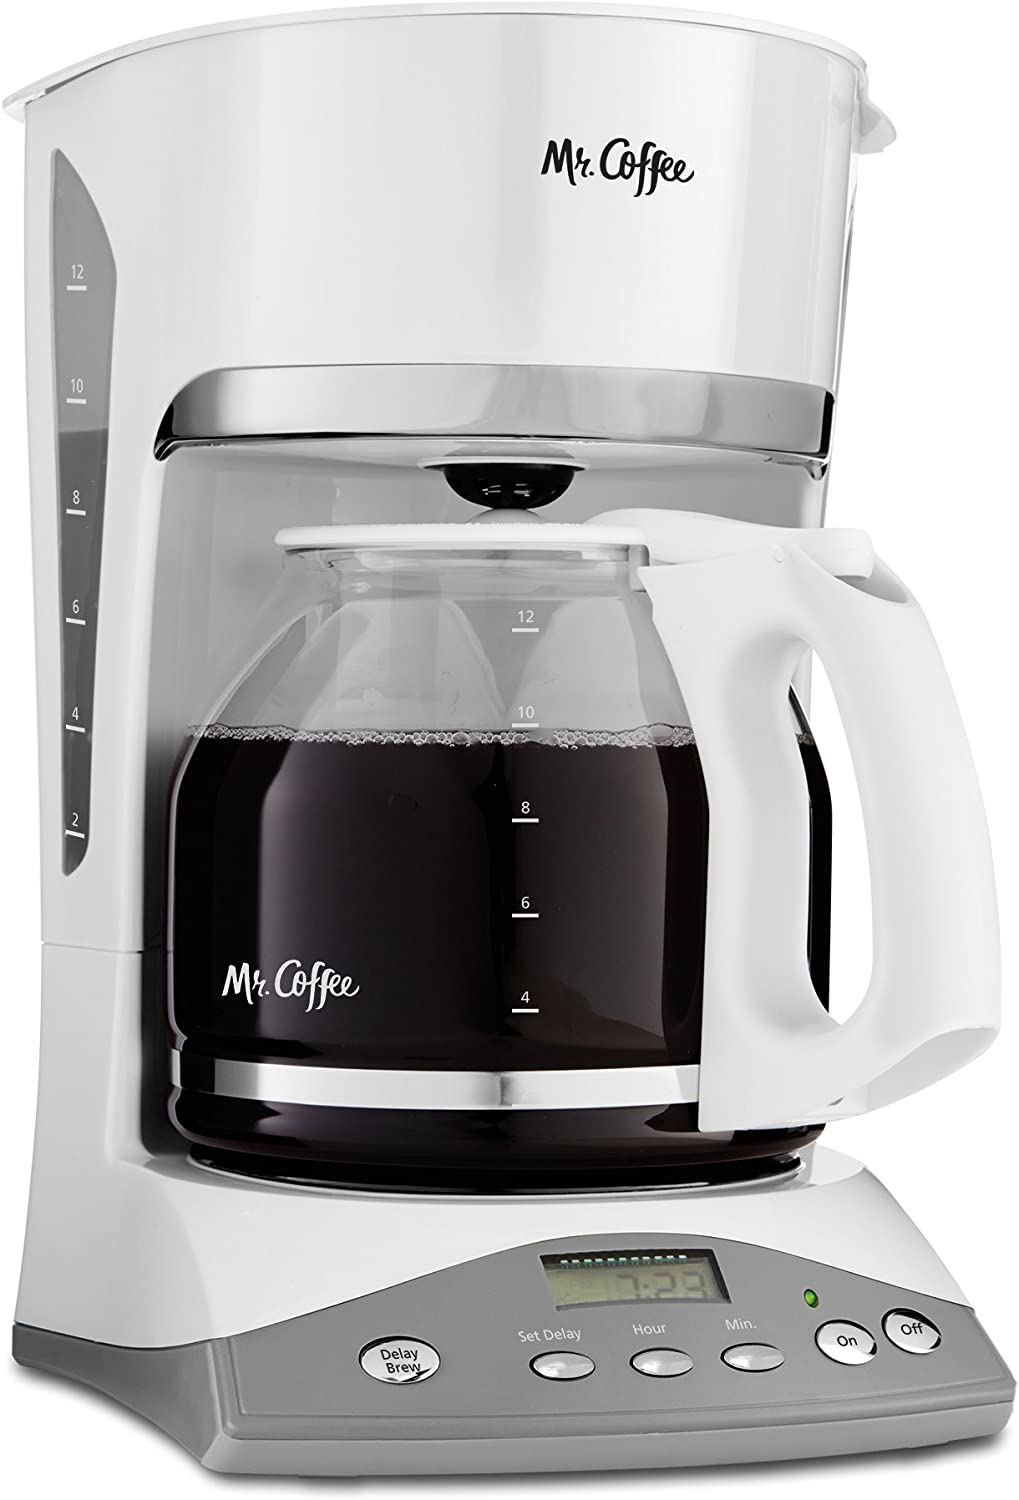 Mr. Coffee 12 Cup Programmable Coffee Maker, White